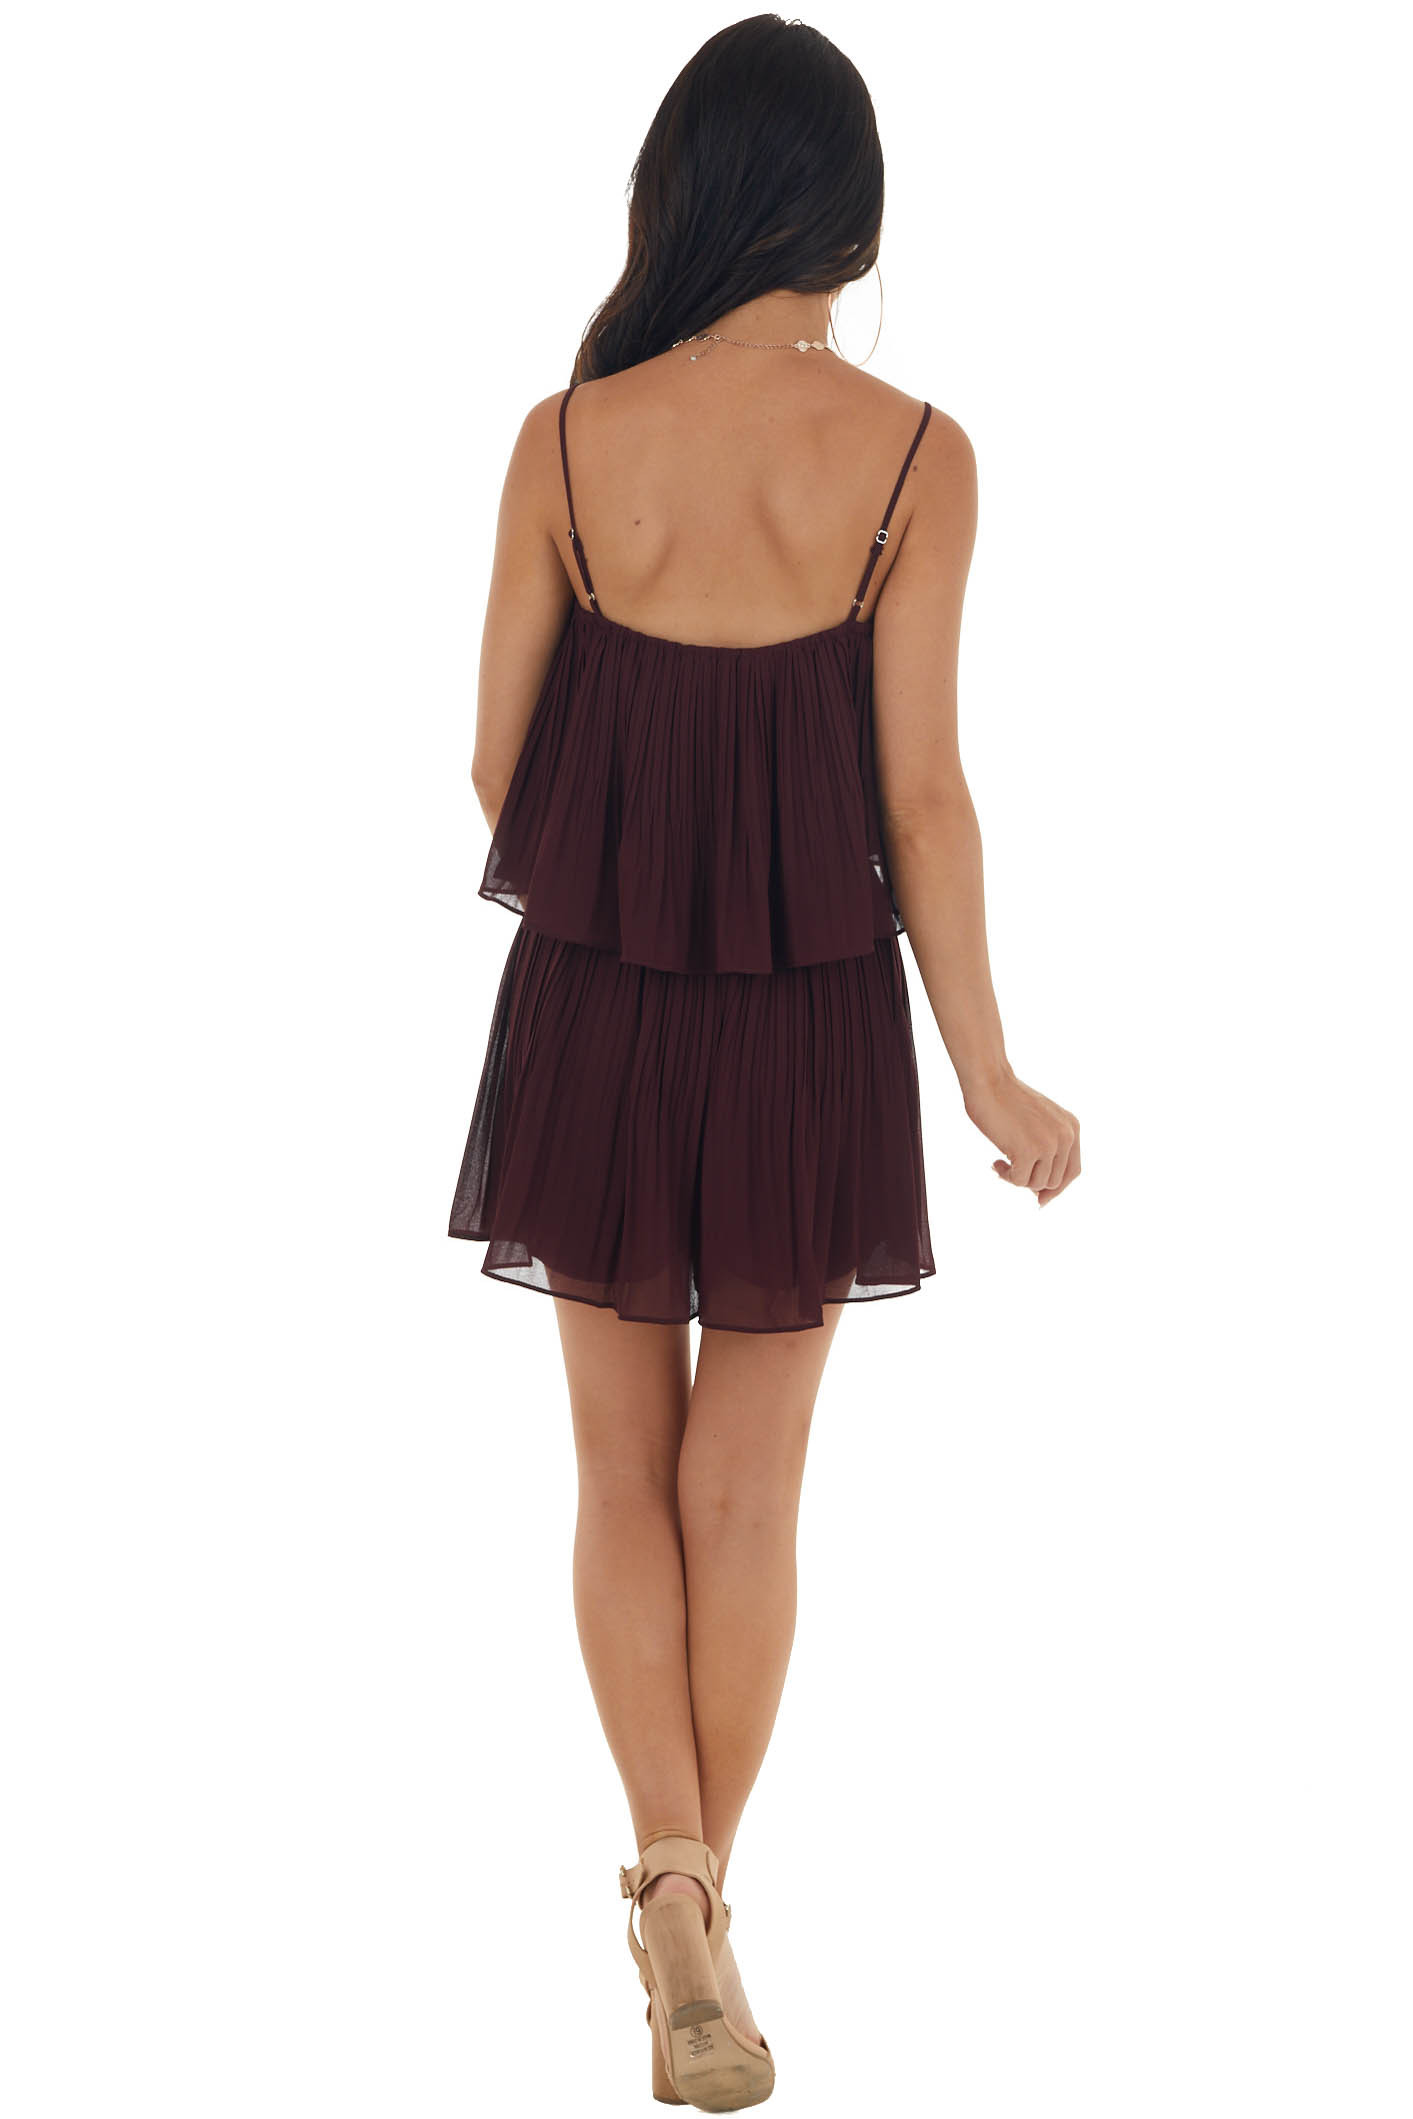 Eggplant Sleeveless Pleated Overlaying Flowy Fitted Romper